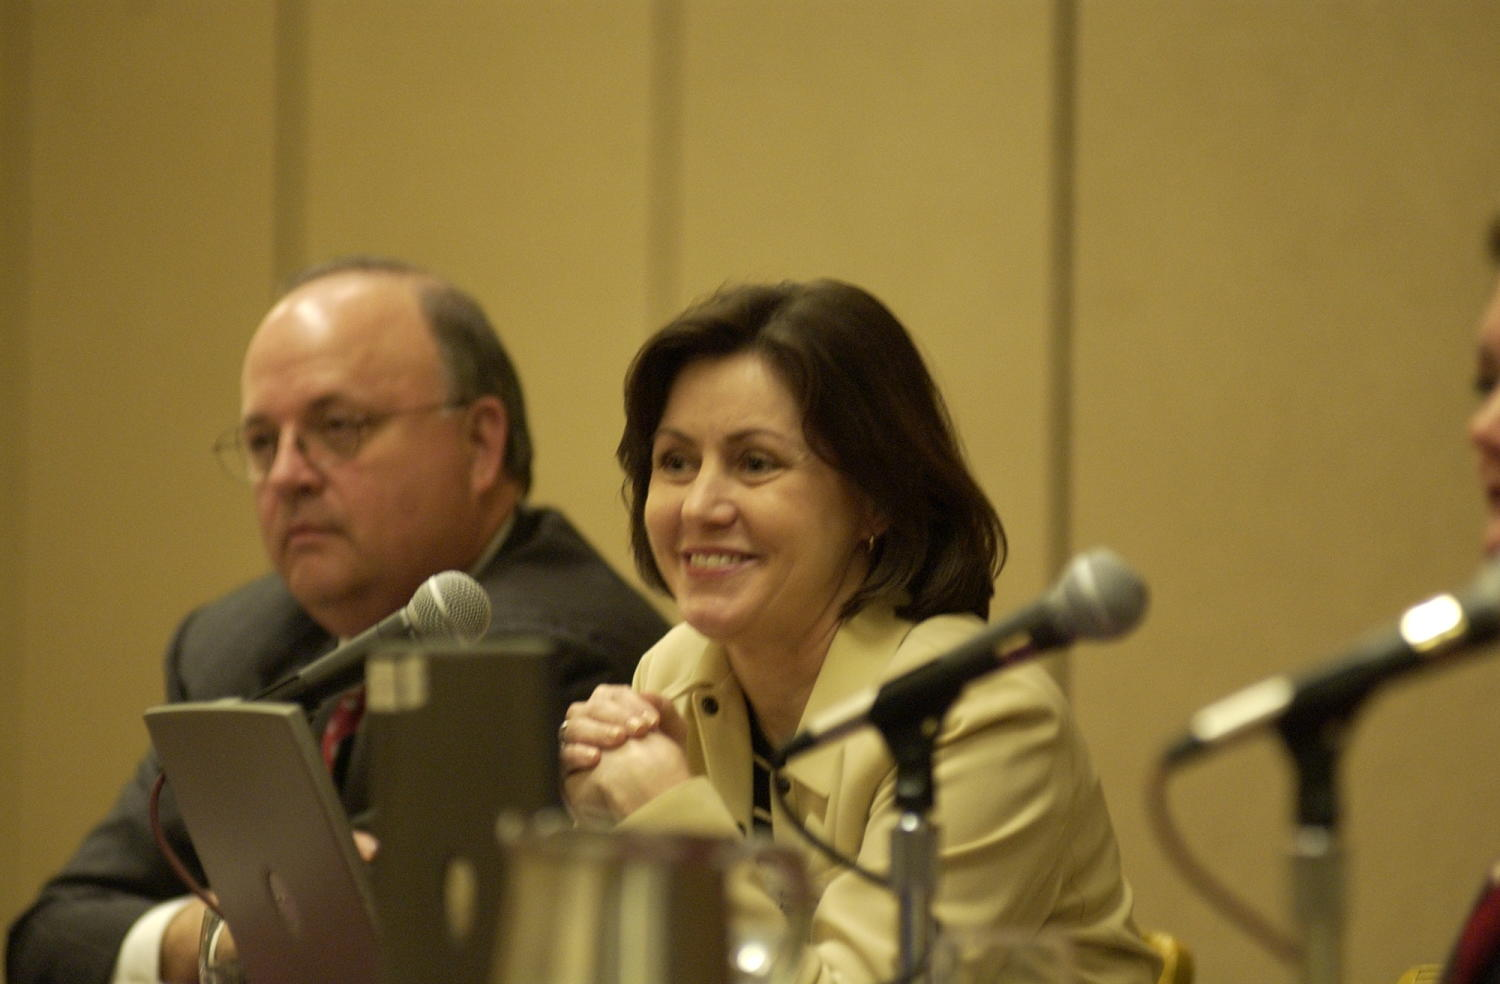 [Bob Carlquist and Rebecca Baldwin at TDNA conference, 2], Photograph of Bob Carlquist (left) and Rebecca Baldwin (right), two guest speakers attending the 2004 Texas Daily News Association annual conference held in Corpus Christi. Baldwin is seen leaning forward and looking out into the crowd of conference attendees.,